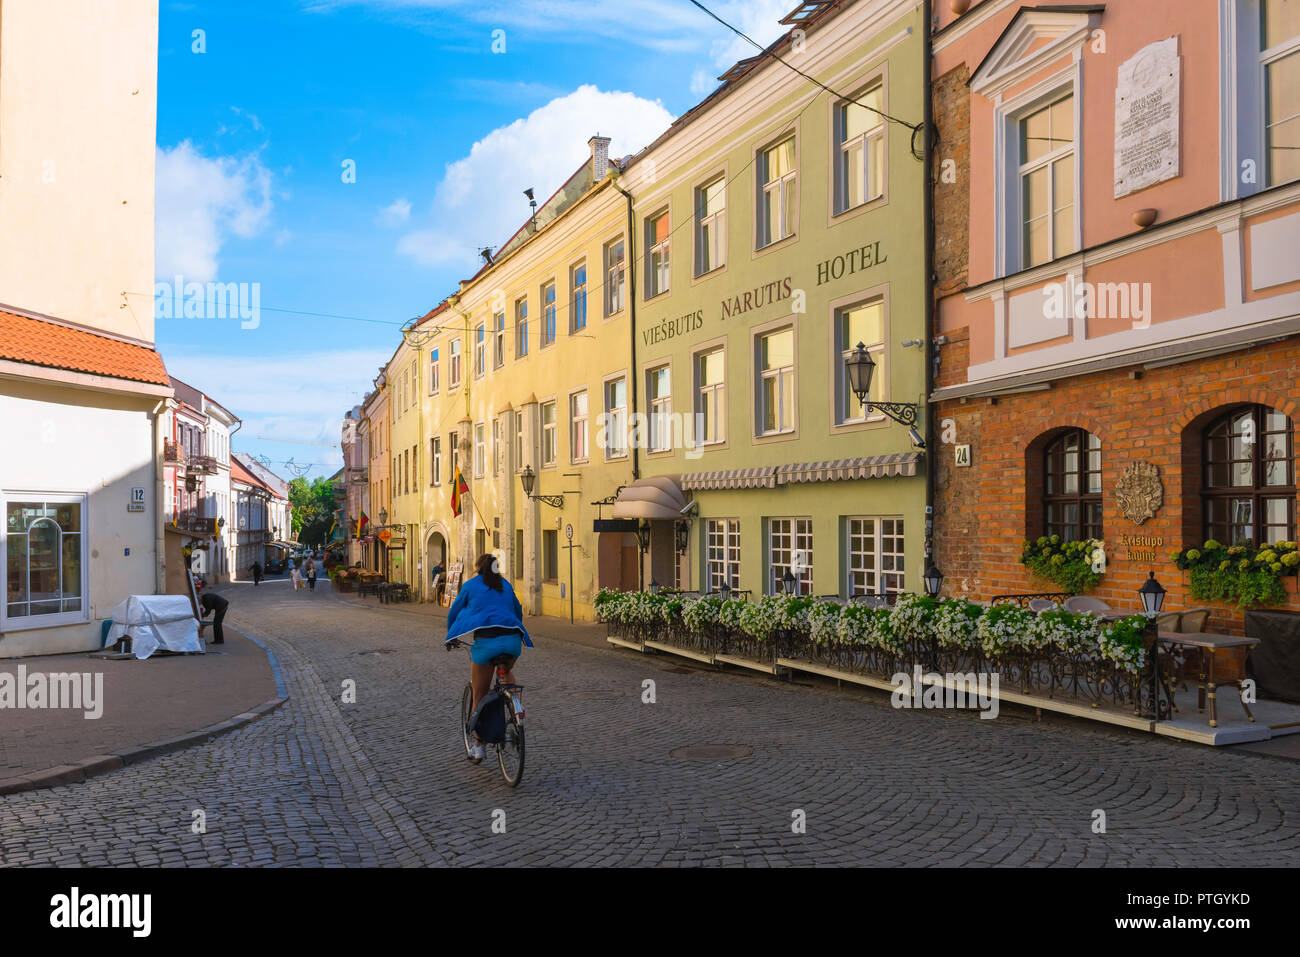 Vilnius old town, view on a summer morning of a young woman cycling along Pilies Gatve - the main thoroughfare in Vilnius Old Town, Lithuania. Stock Photo